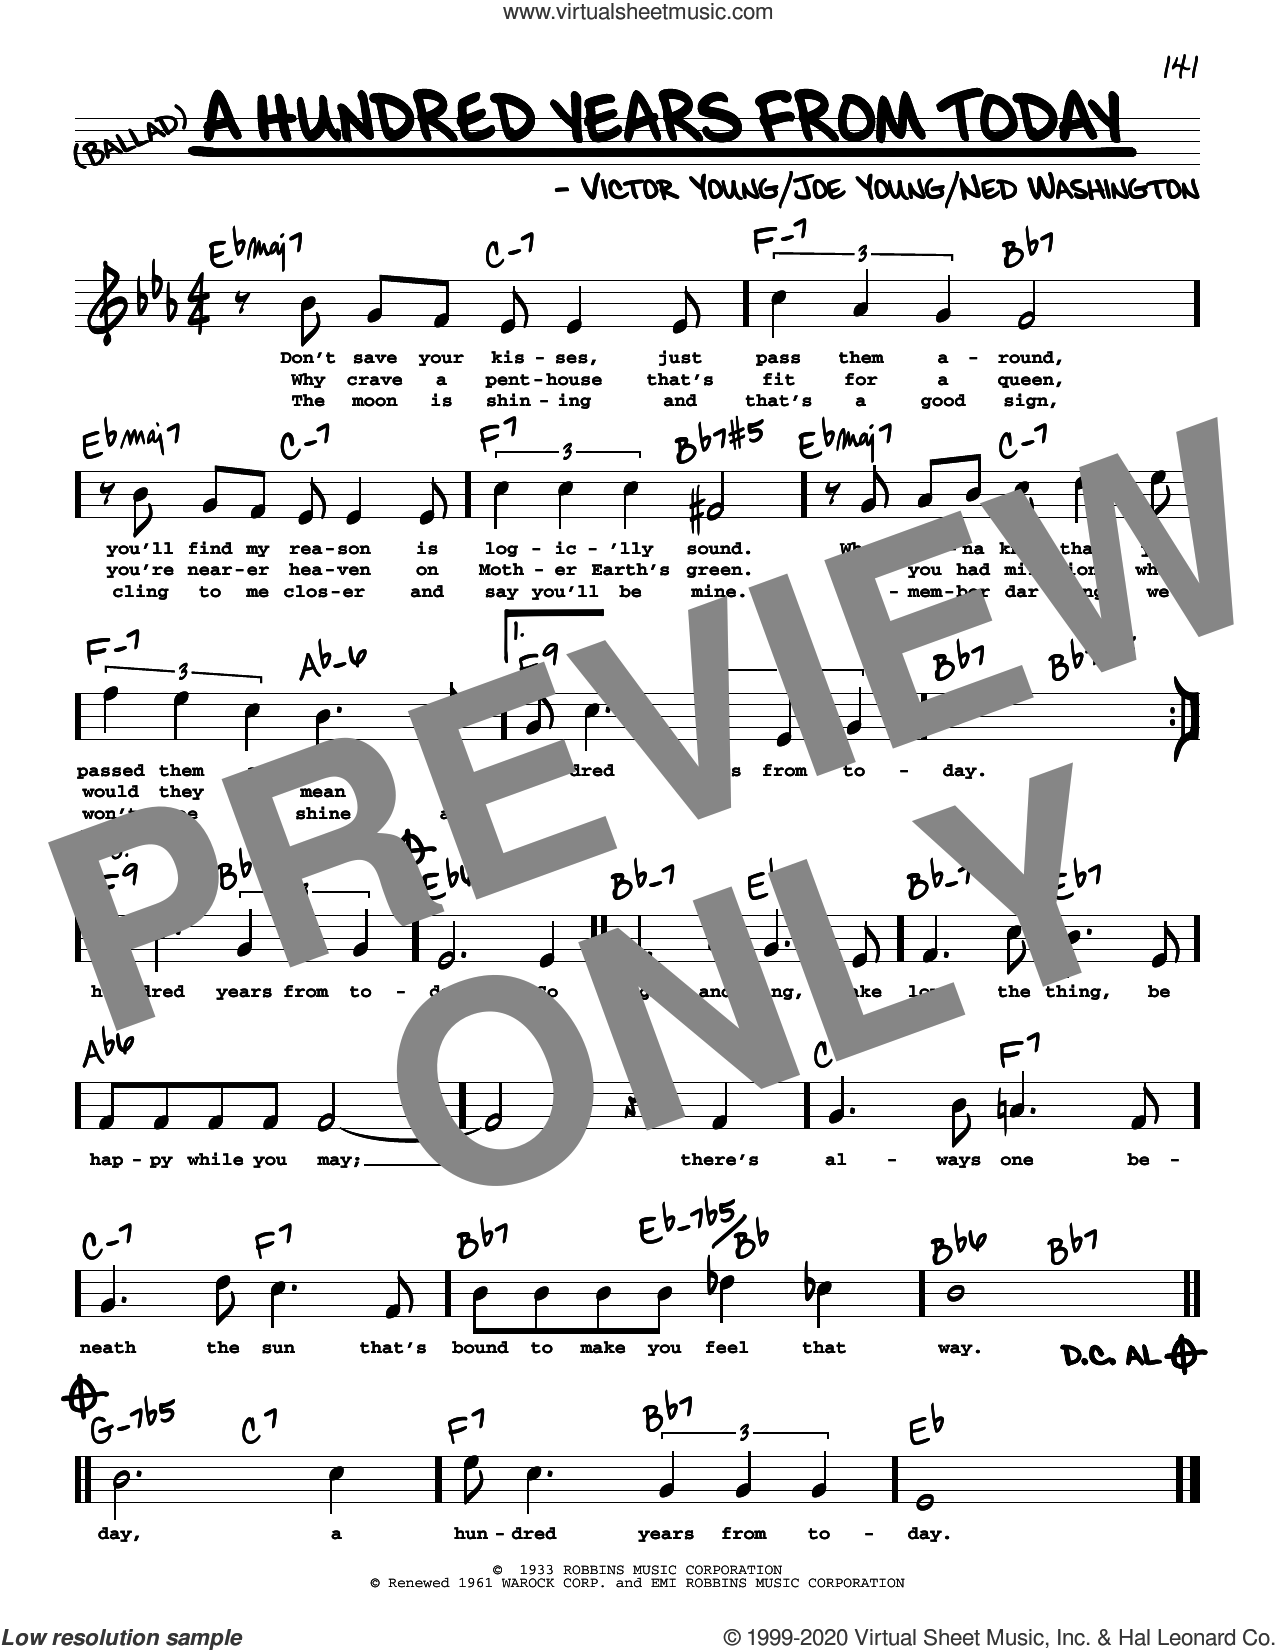 A Hundred Years From Today (High Voice) sheet music for voice and other instruments (high voice) by Frank Sinatra, Joe Young, Ned Washington and Victor Young, intermediate skill level